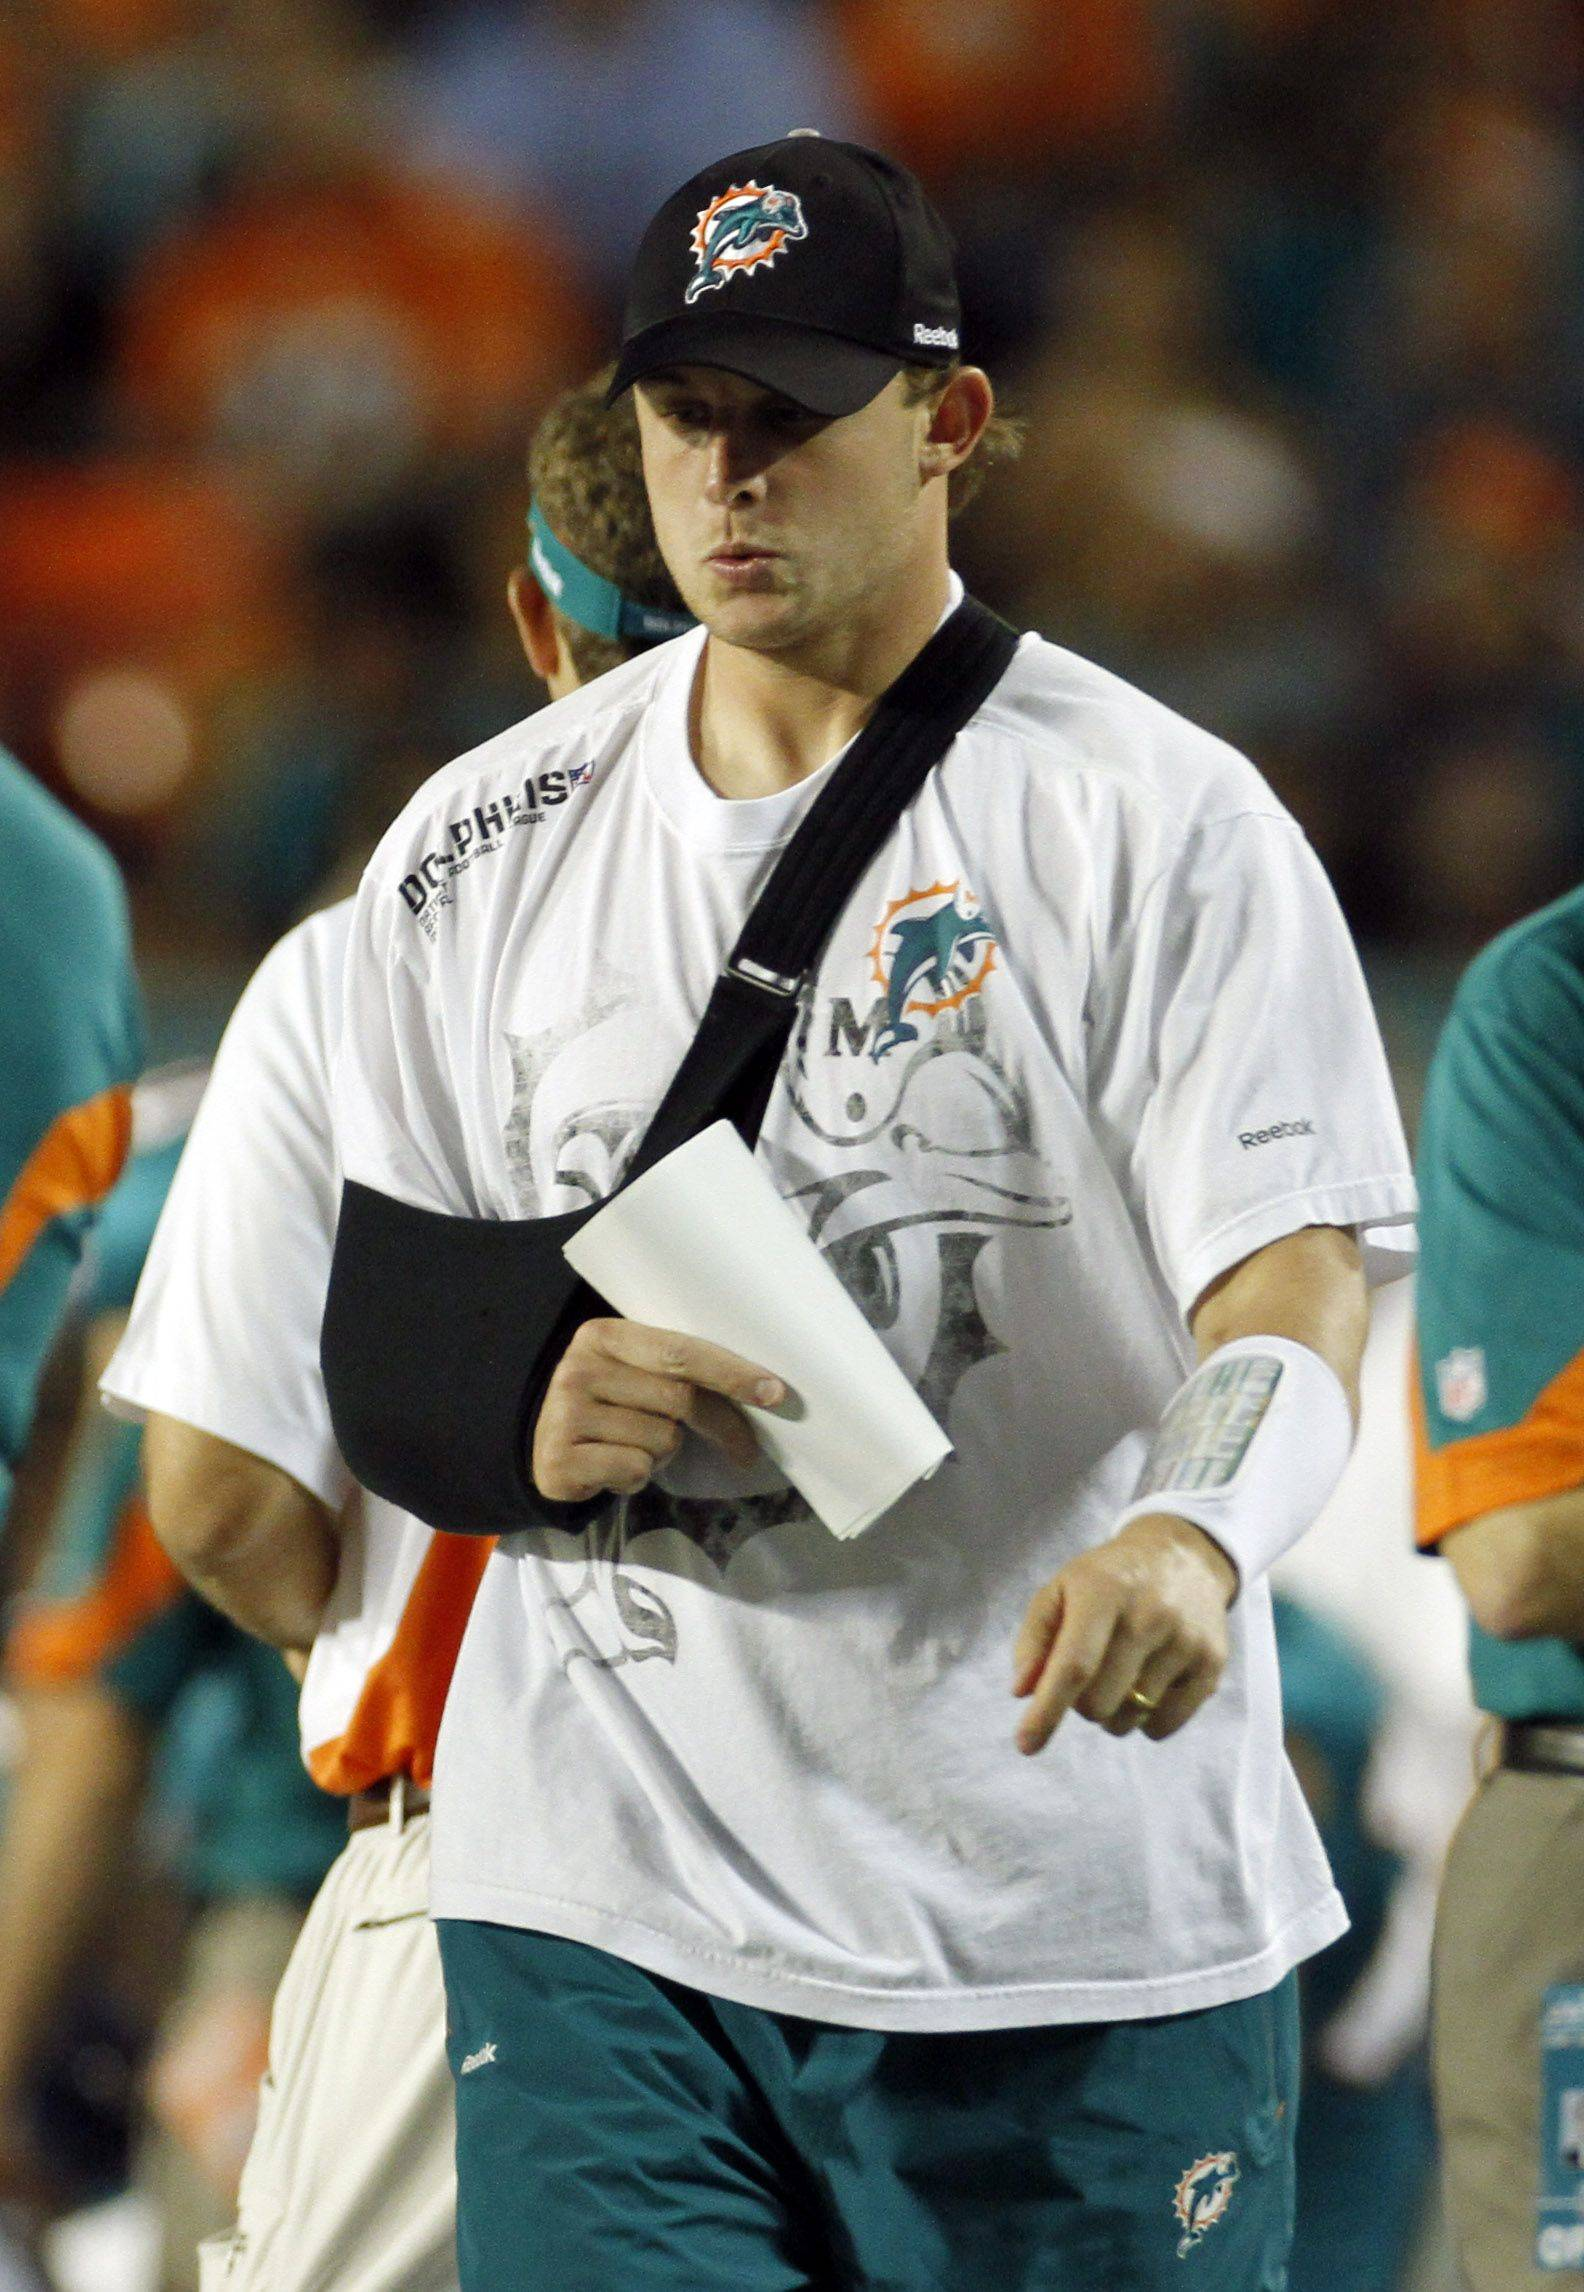 Miami Dolphins quarterback Chad Pennington walks the sidelines with his right arm in a sling.